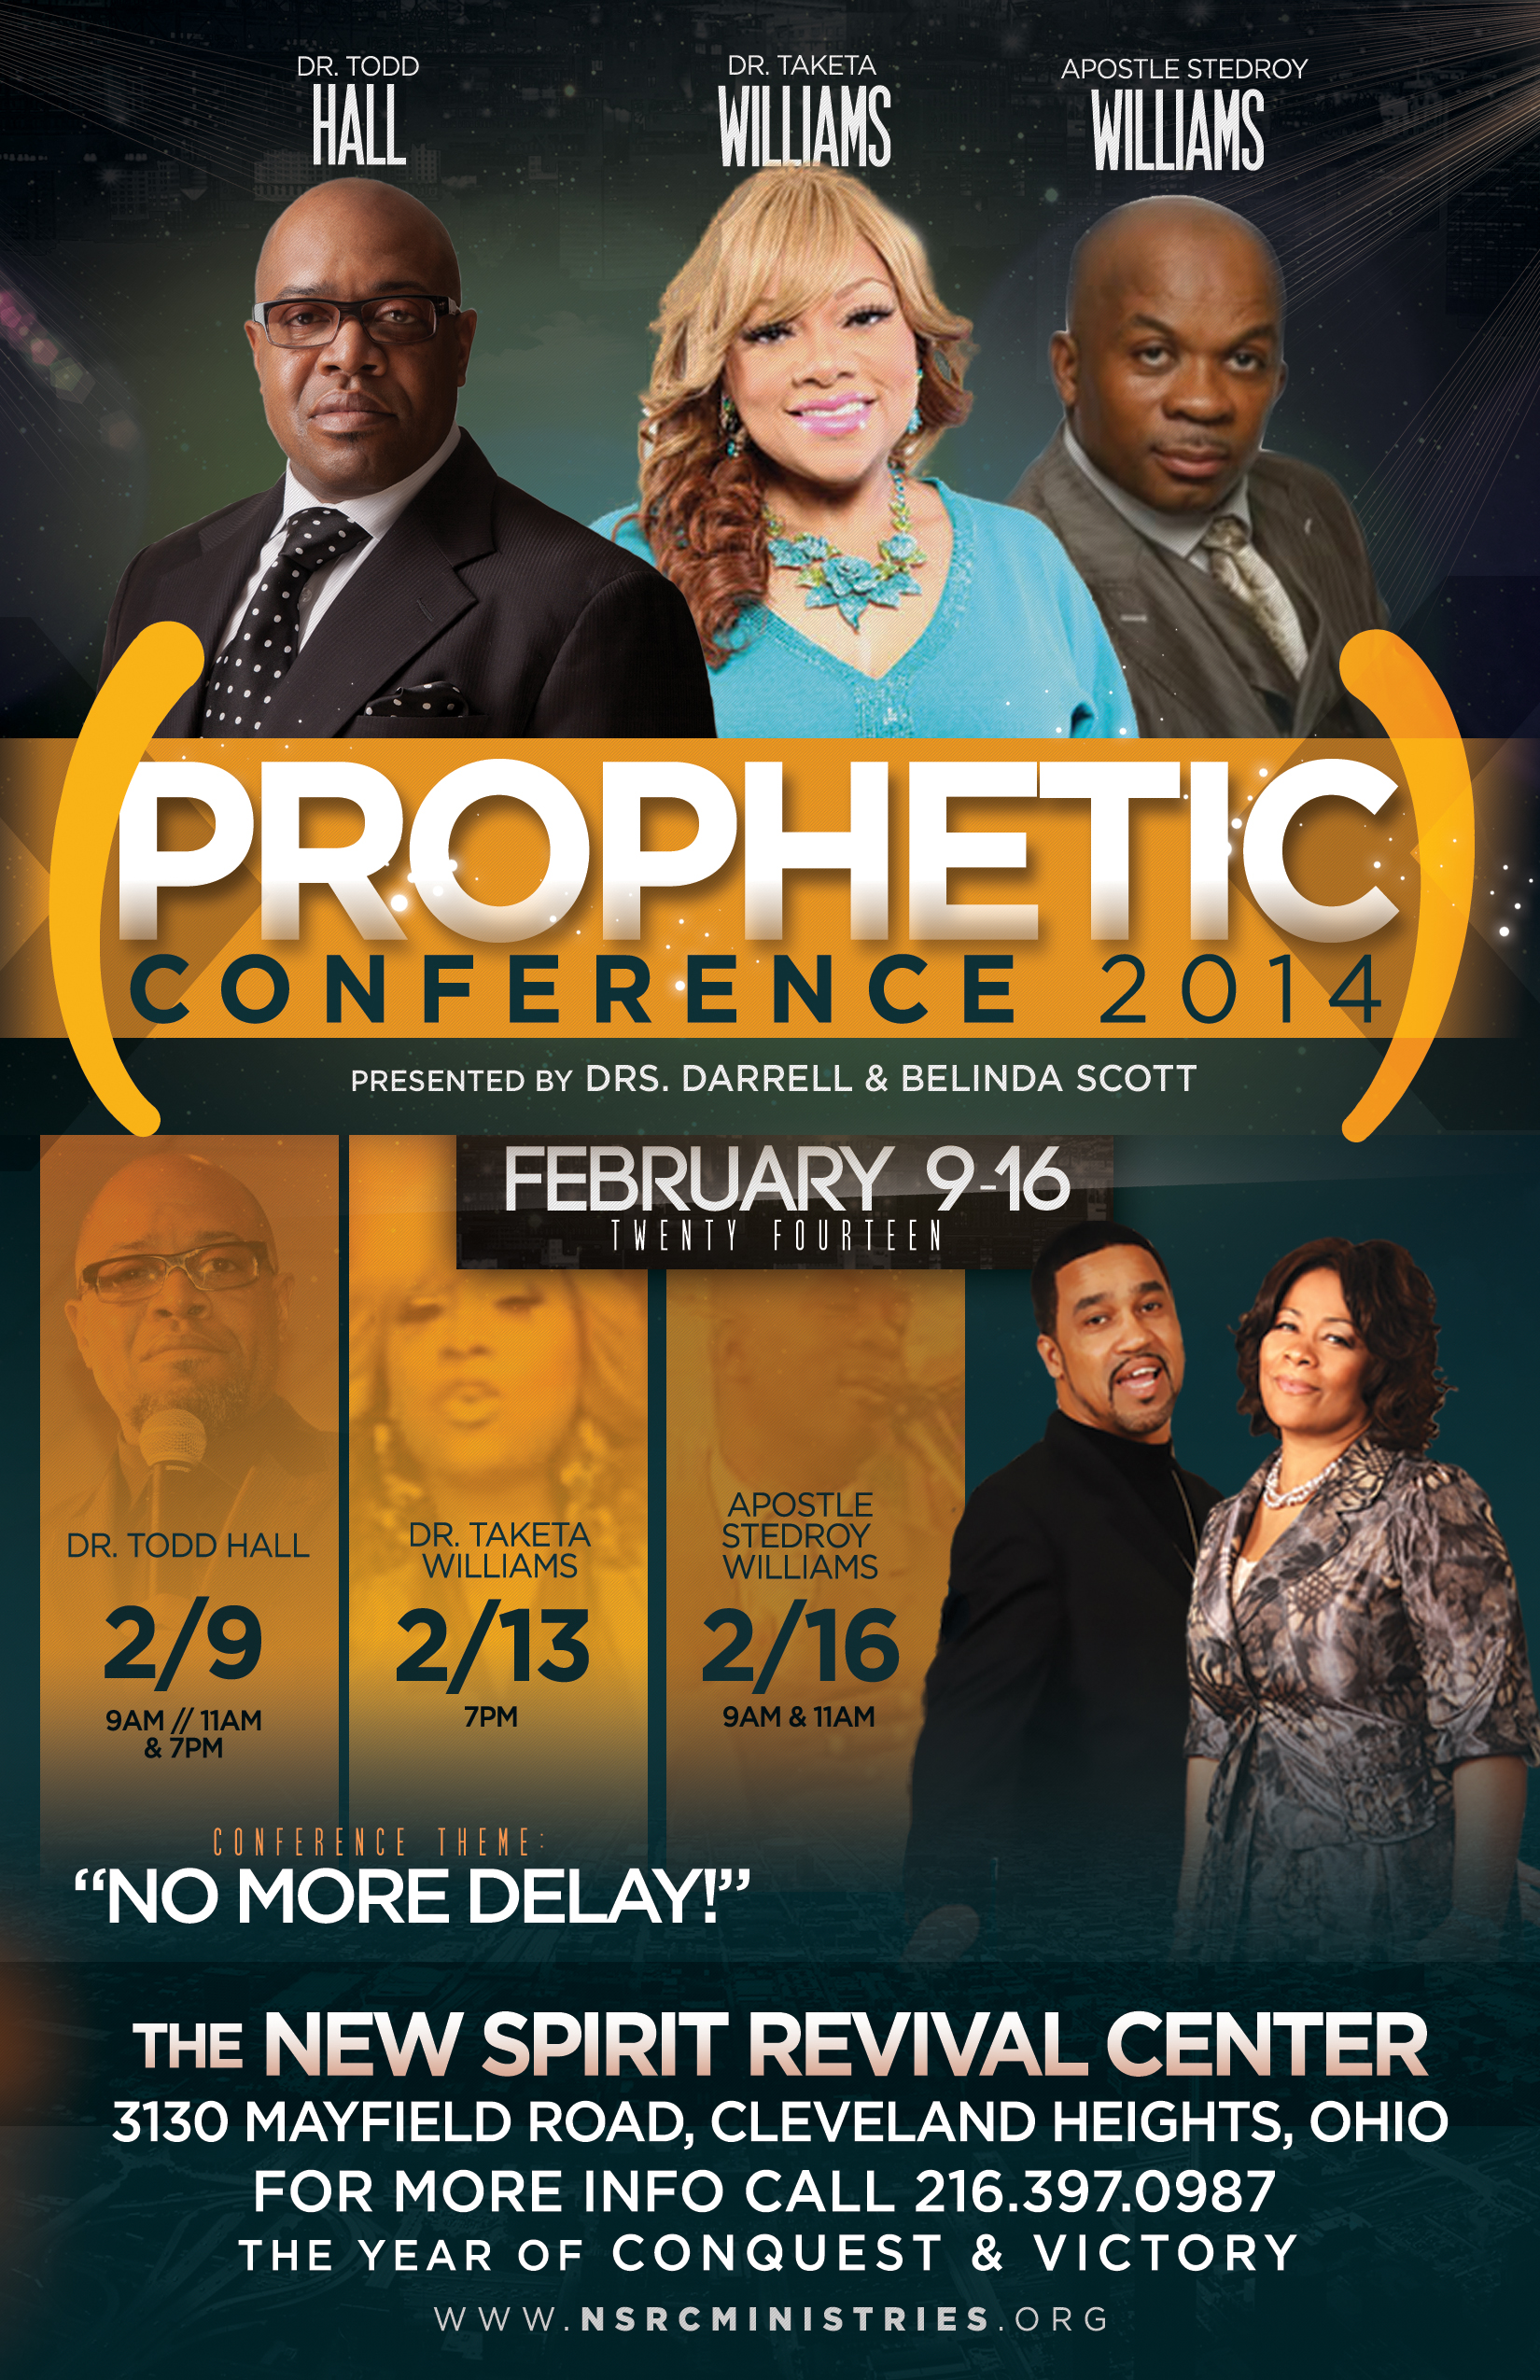 Church Conference Flyers Www Pixshark Com Images